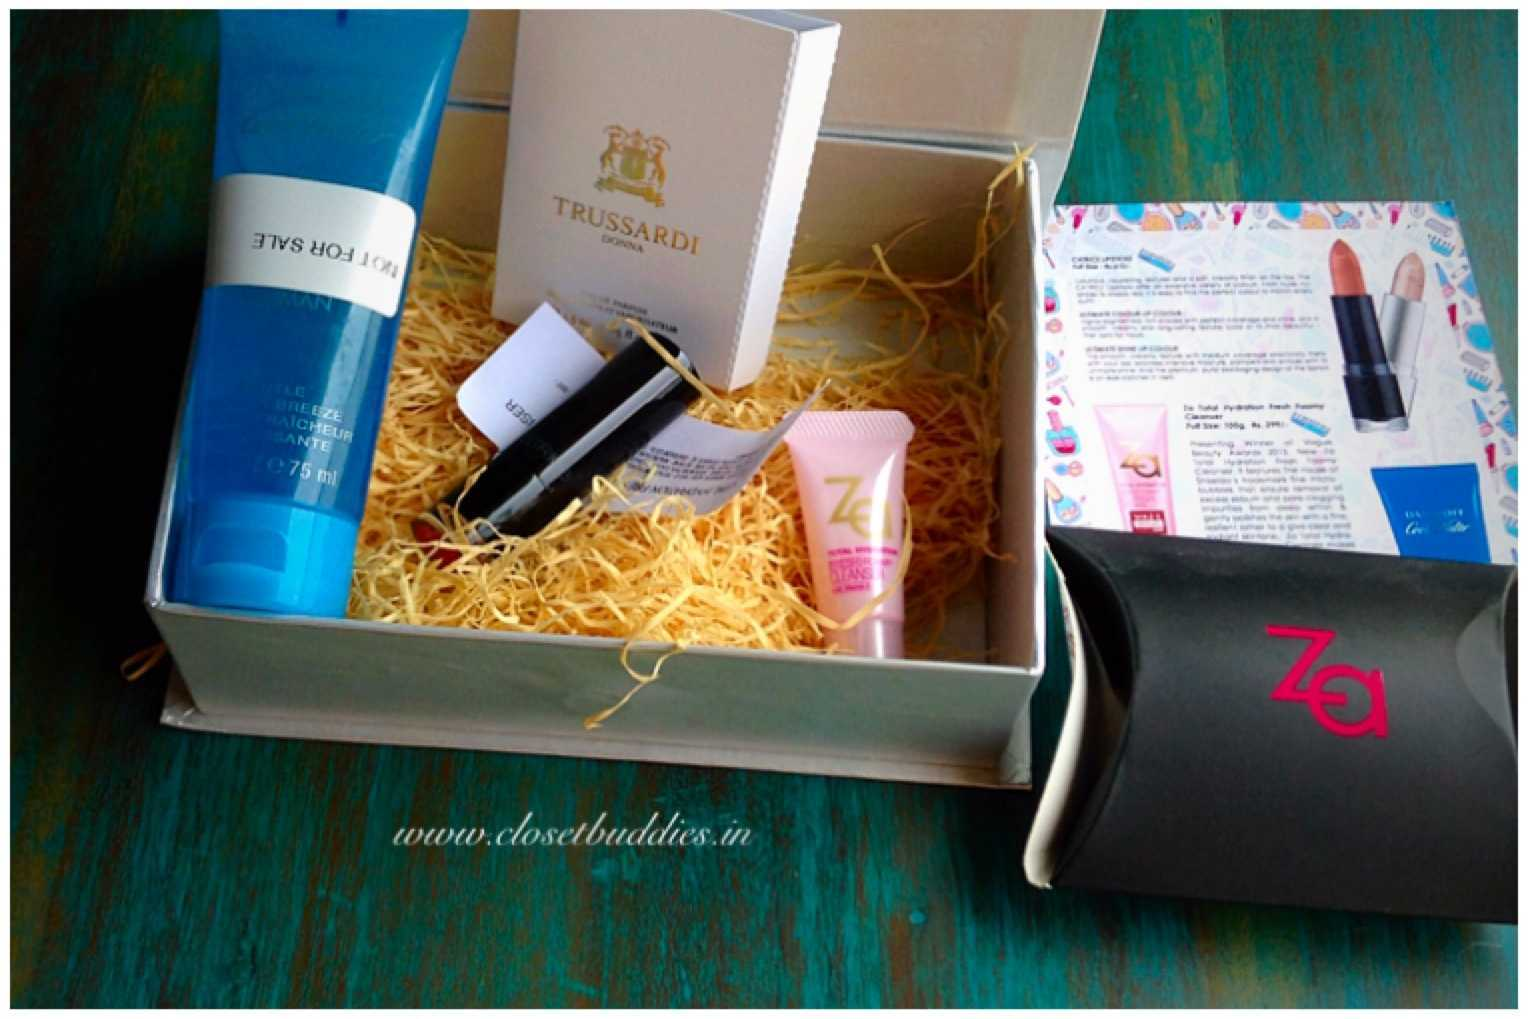 image4 - My Envy Box- September 2015 Review